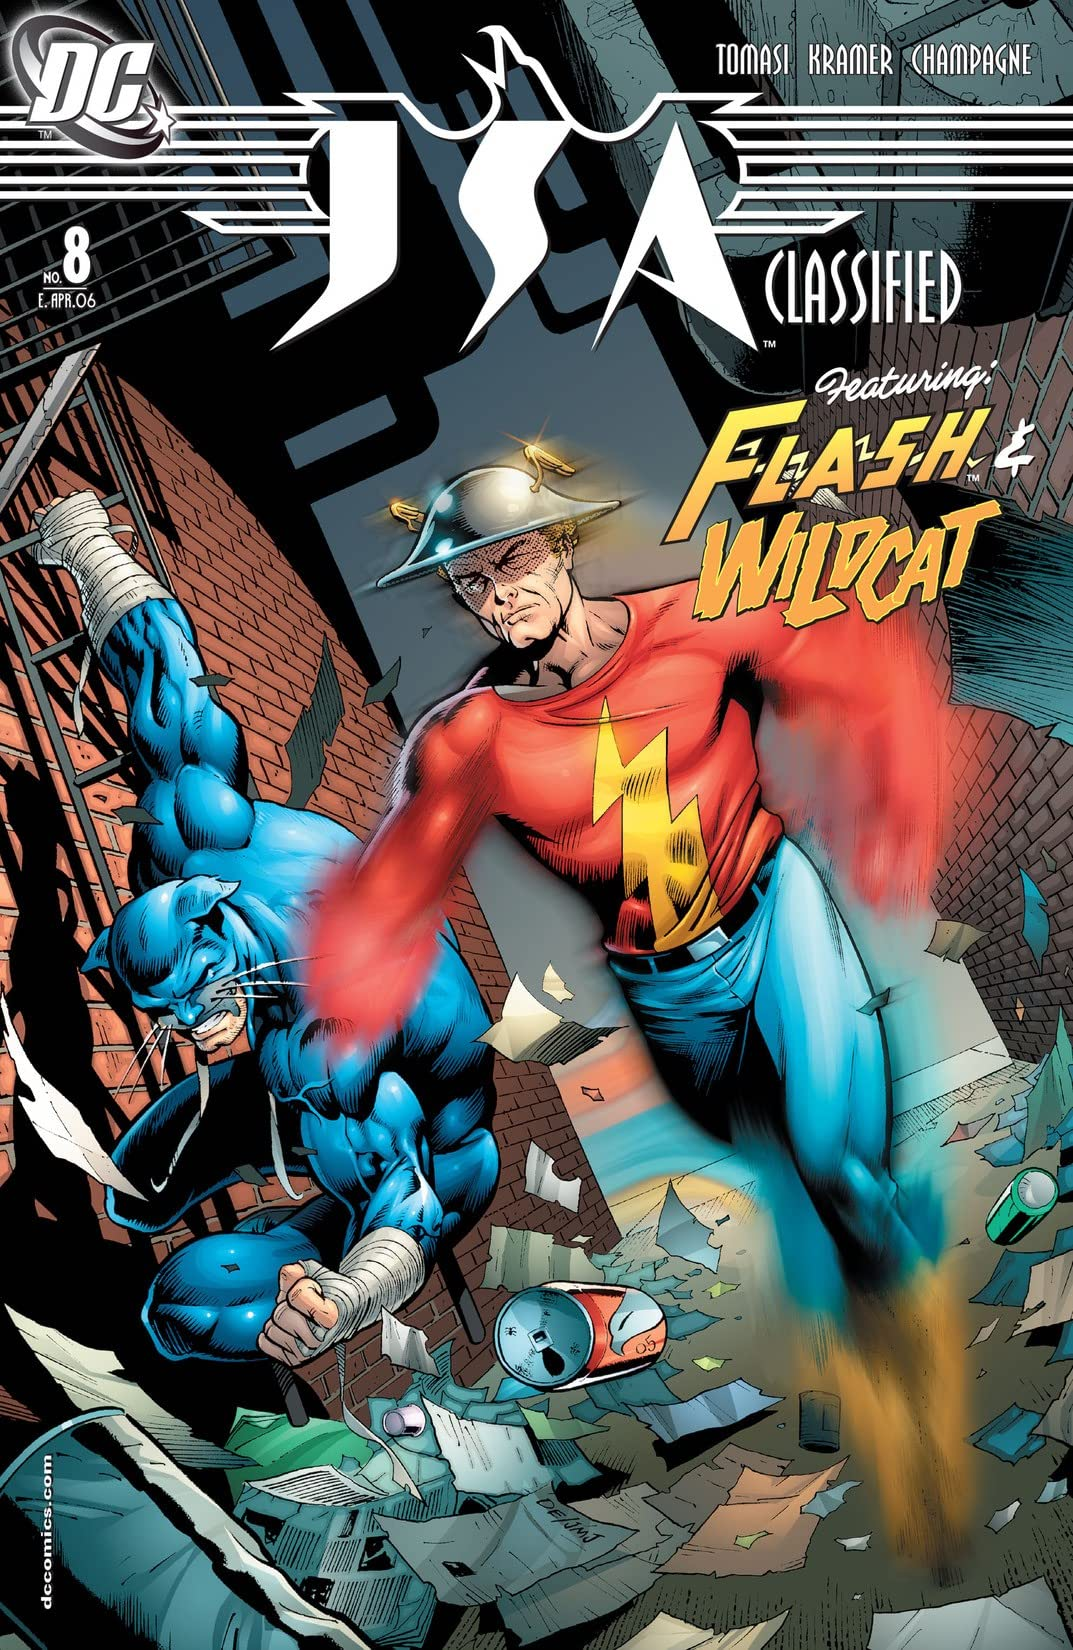 JSA: Classified #8